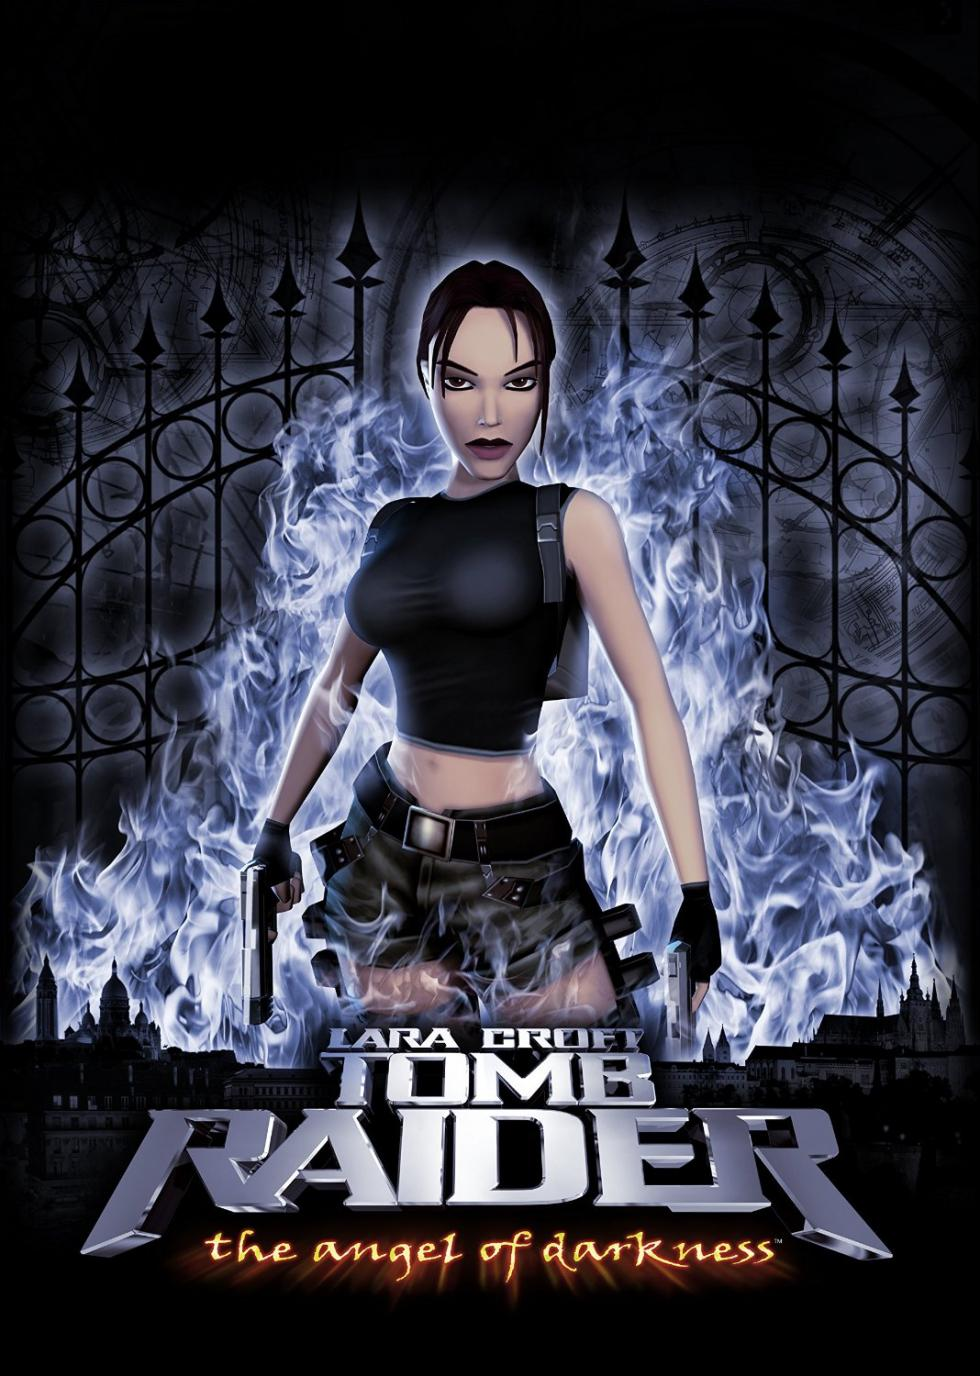 Portada de Tomb Raider The Angel of Darkness (2003)